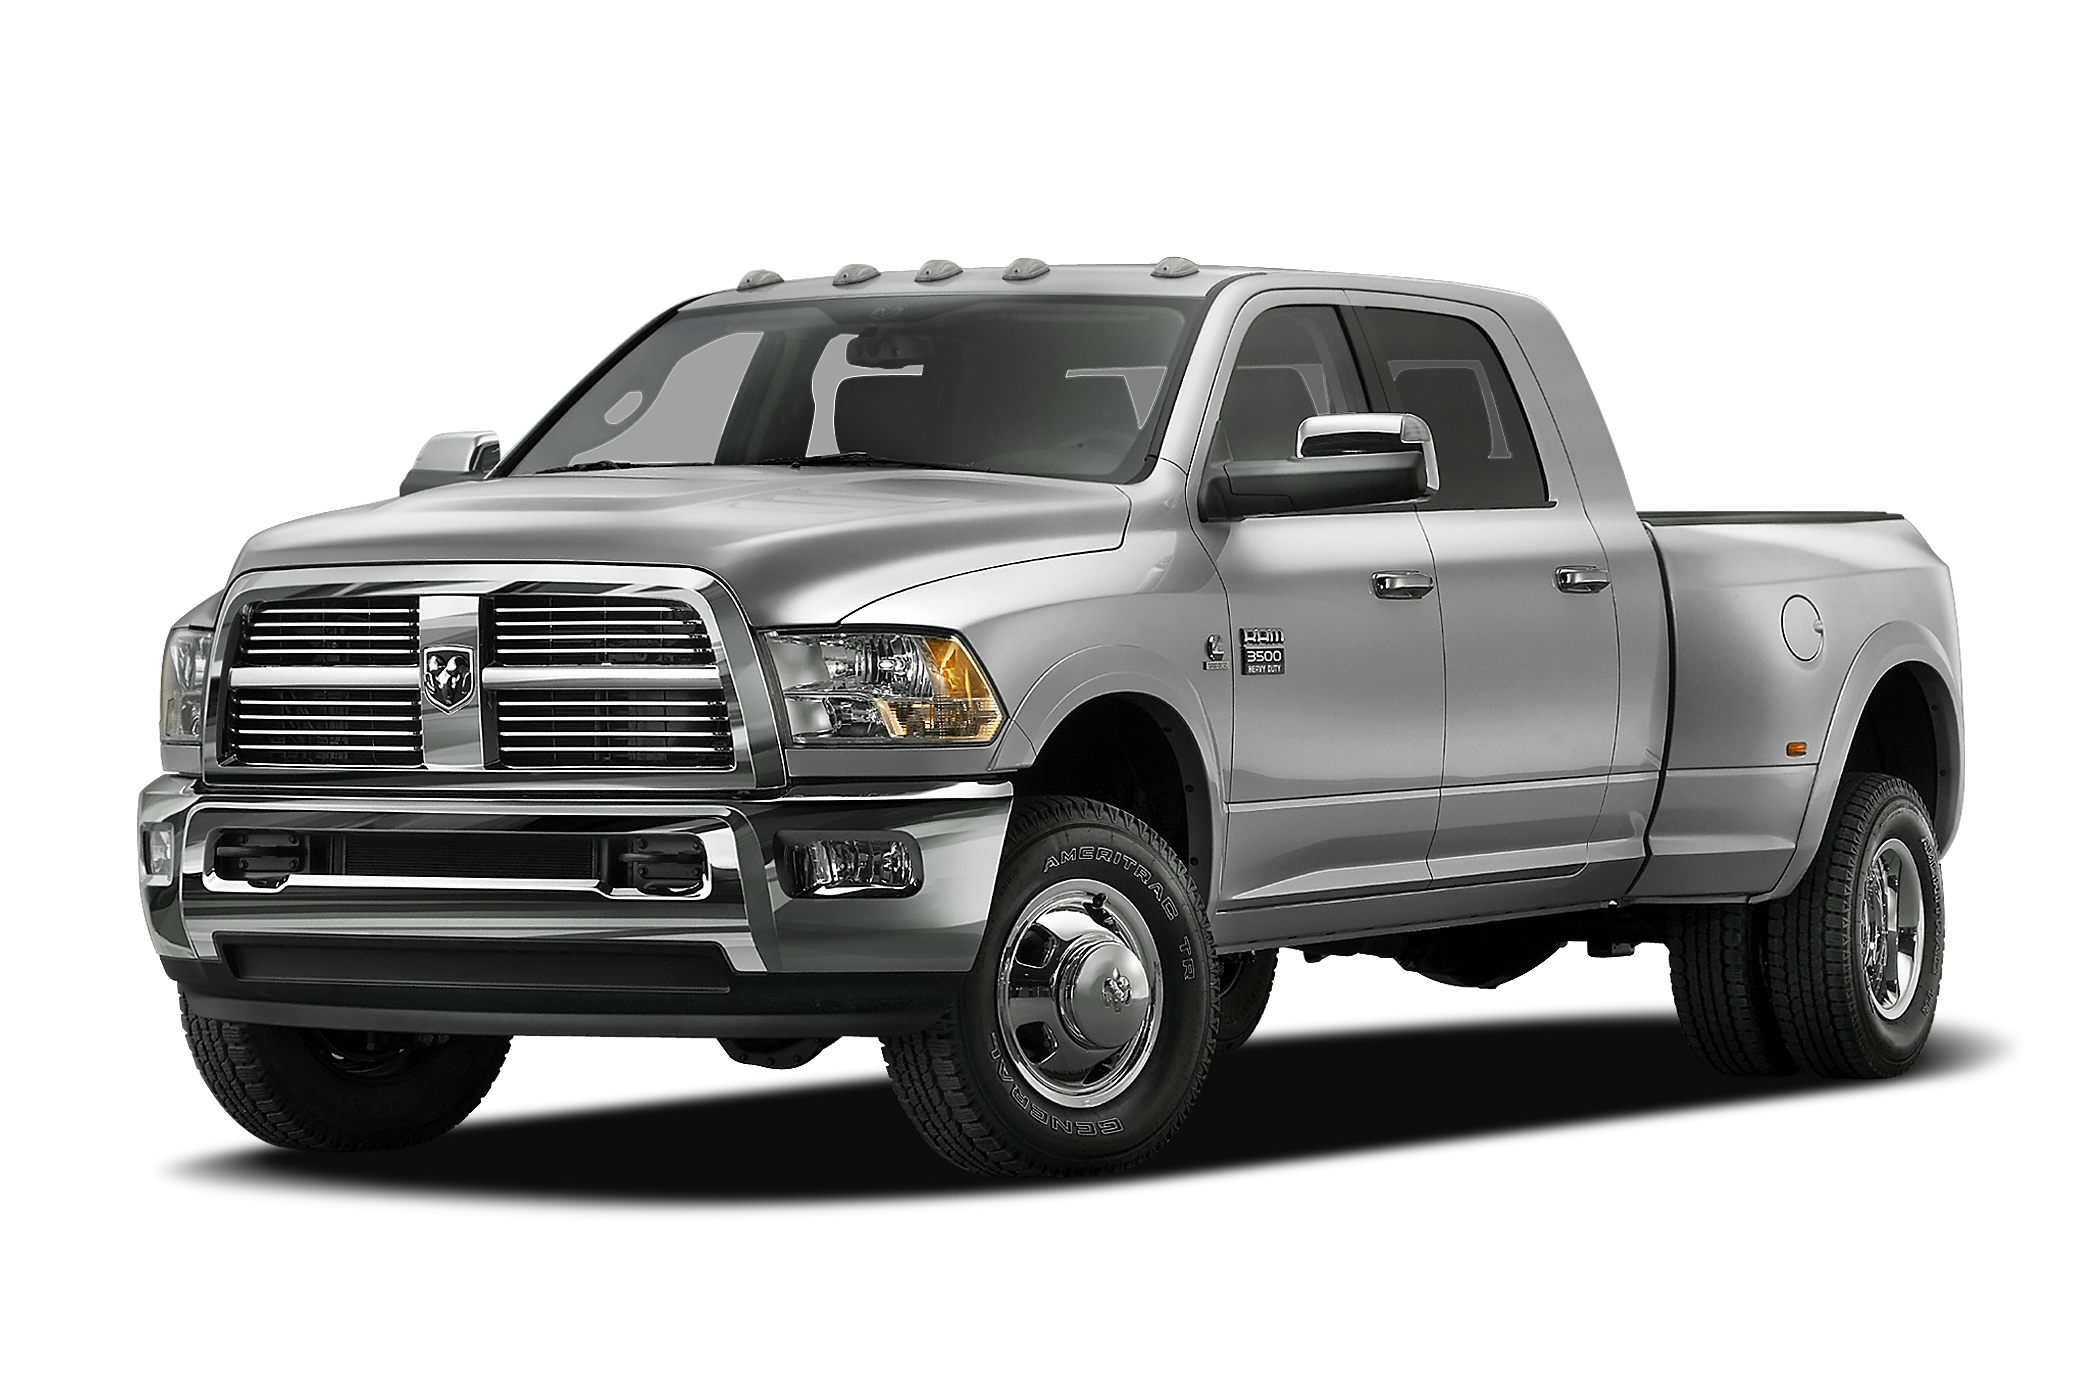 2011 Dodge Ram 3500 SLT 4WD Turbo Crew Cab Just think of all the work you can get done once you